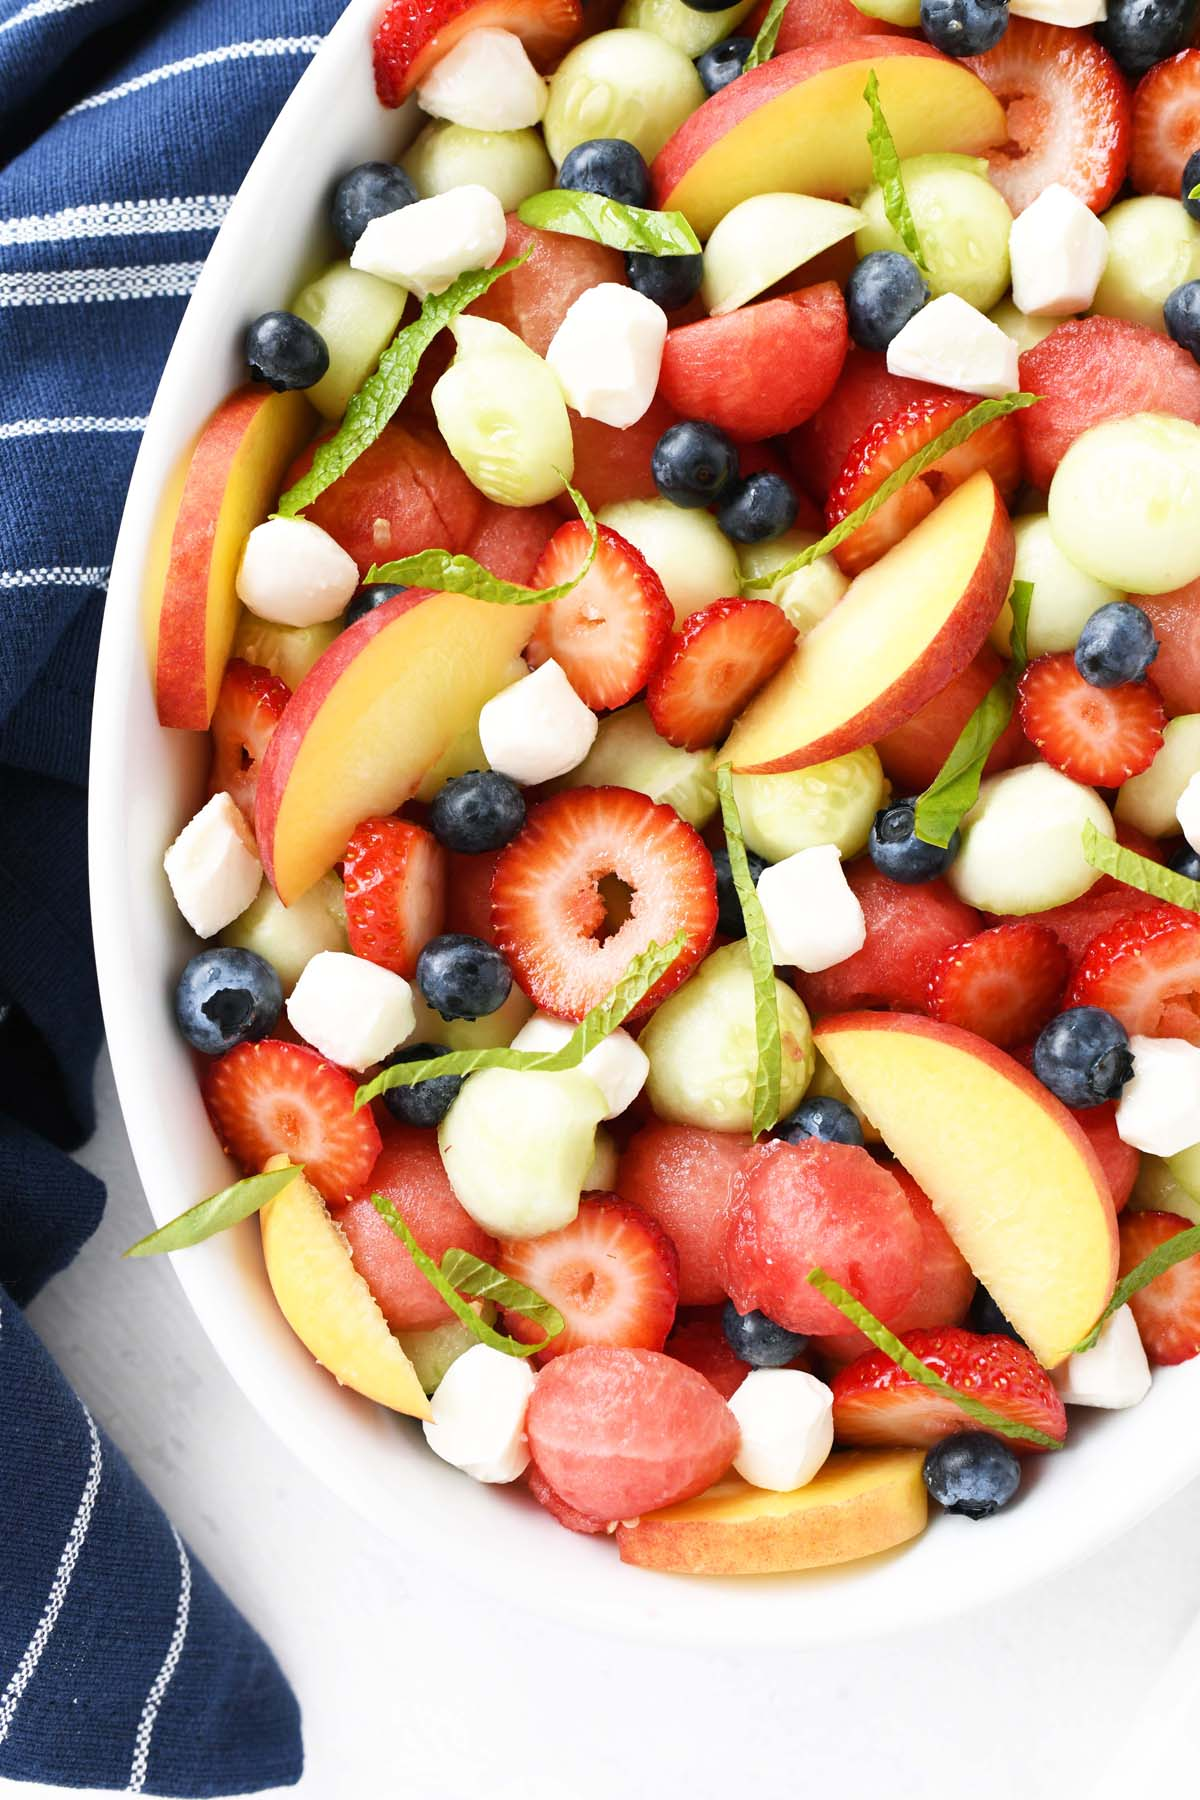 Melon Berry Caprese Salad in an oval white bowl with a blue napkin.